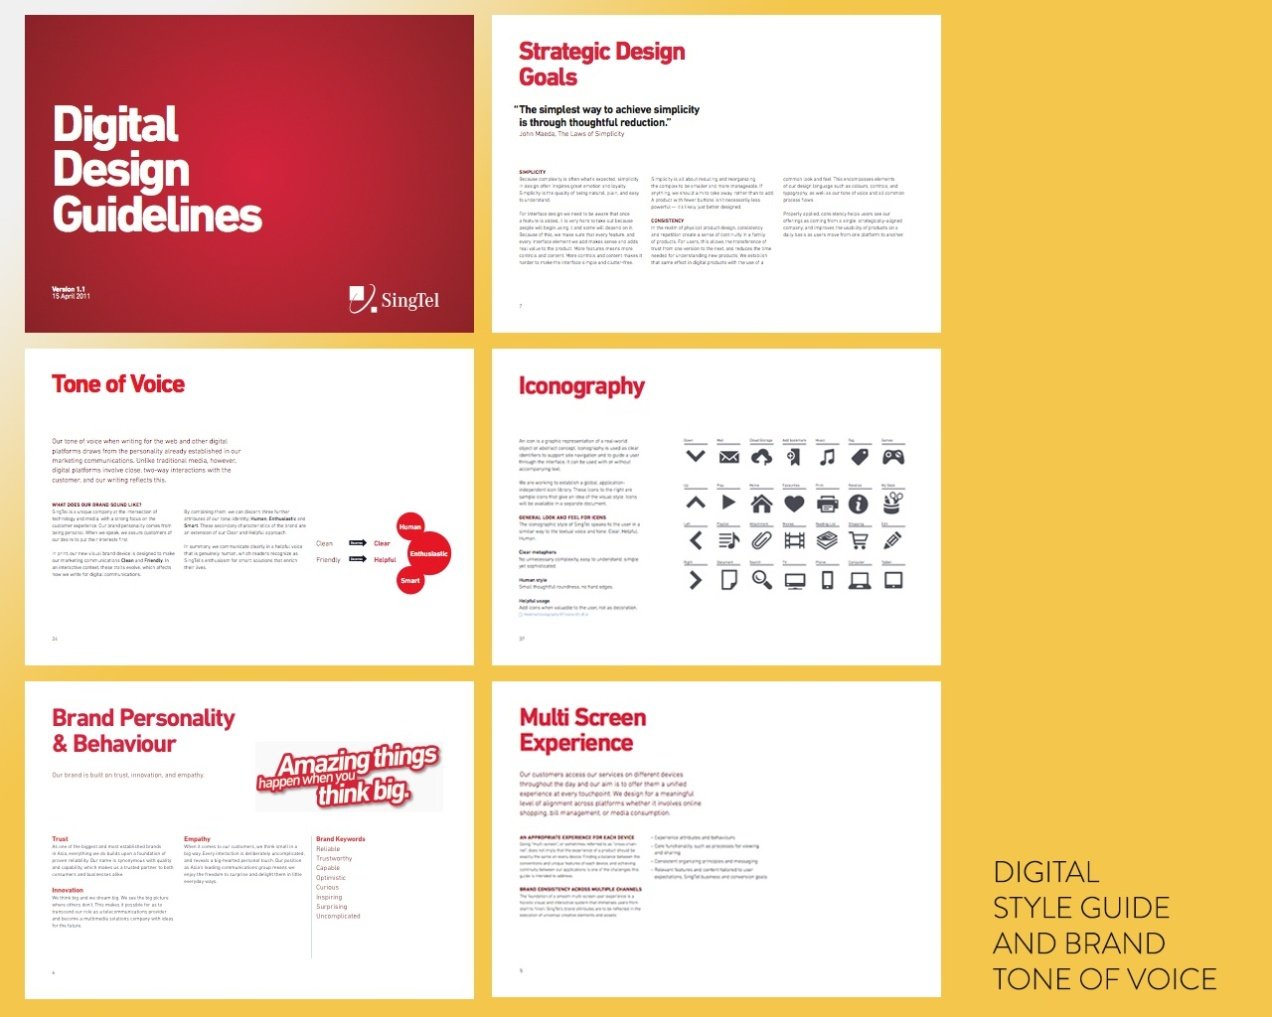 Copy Deliverable: Digital Design Guidelines and Tone of Voice documentation